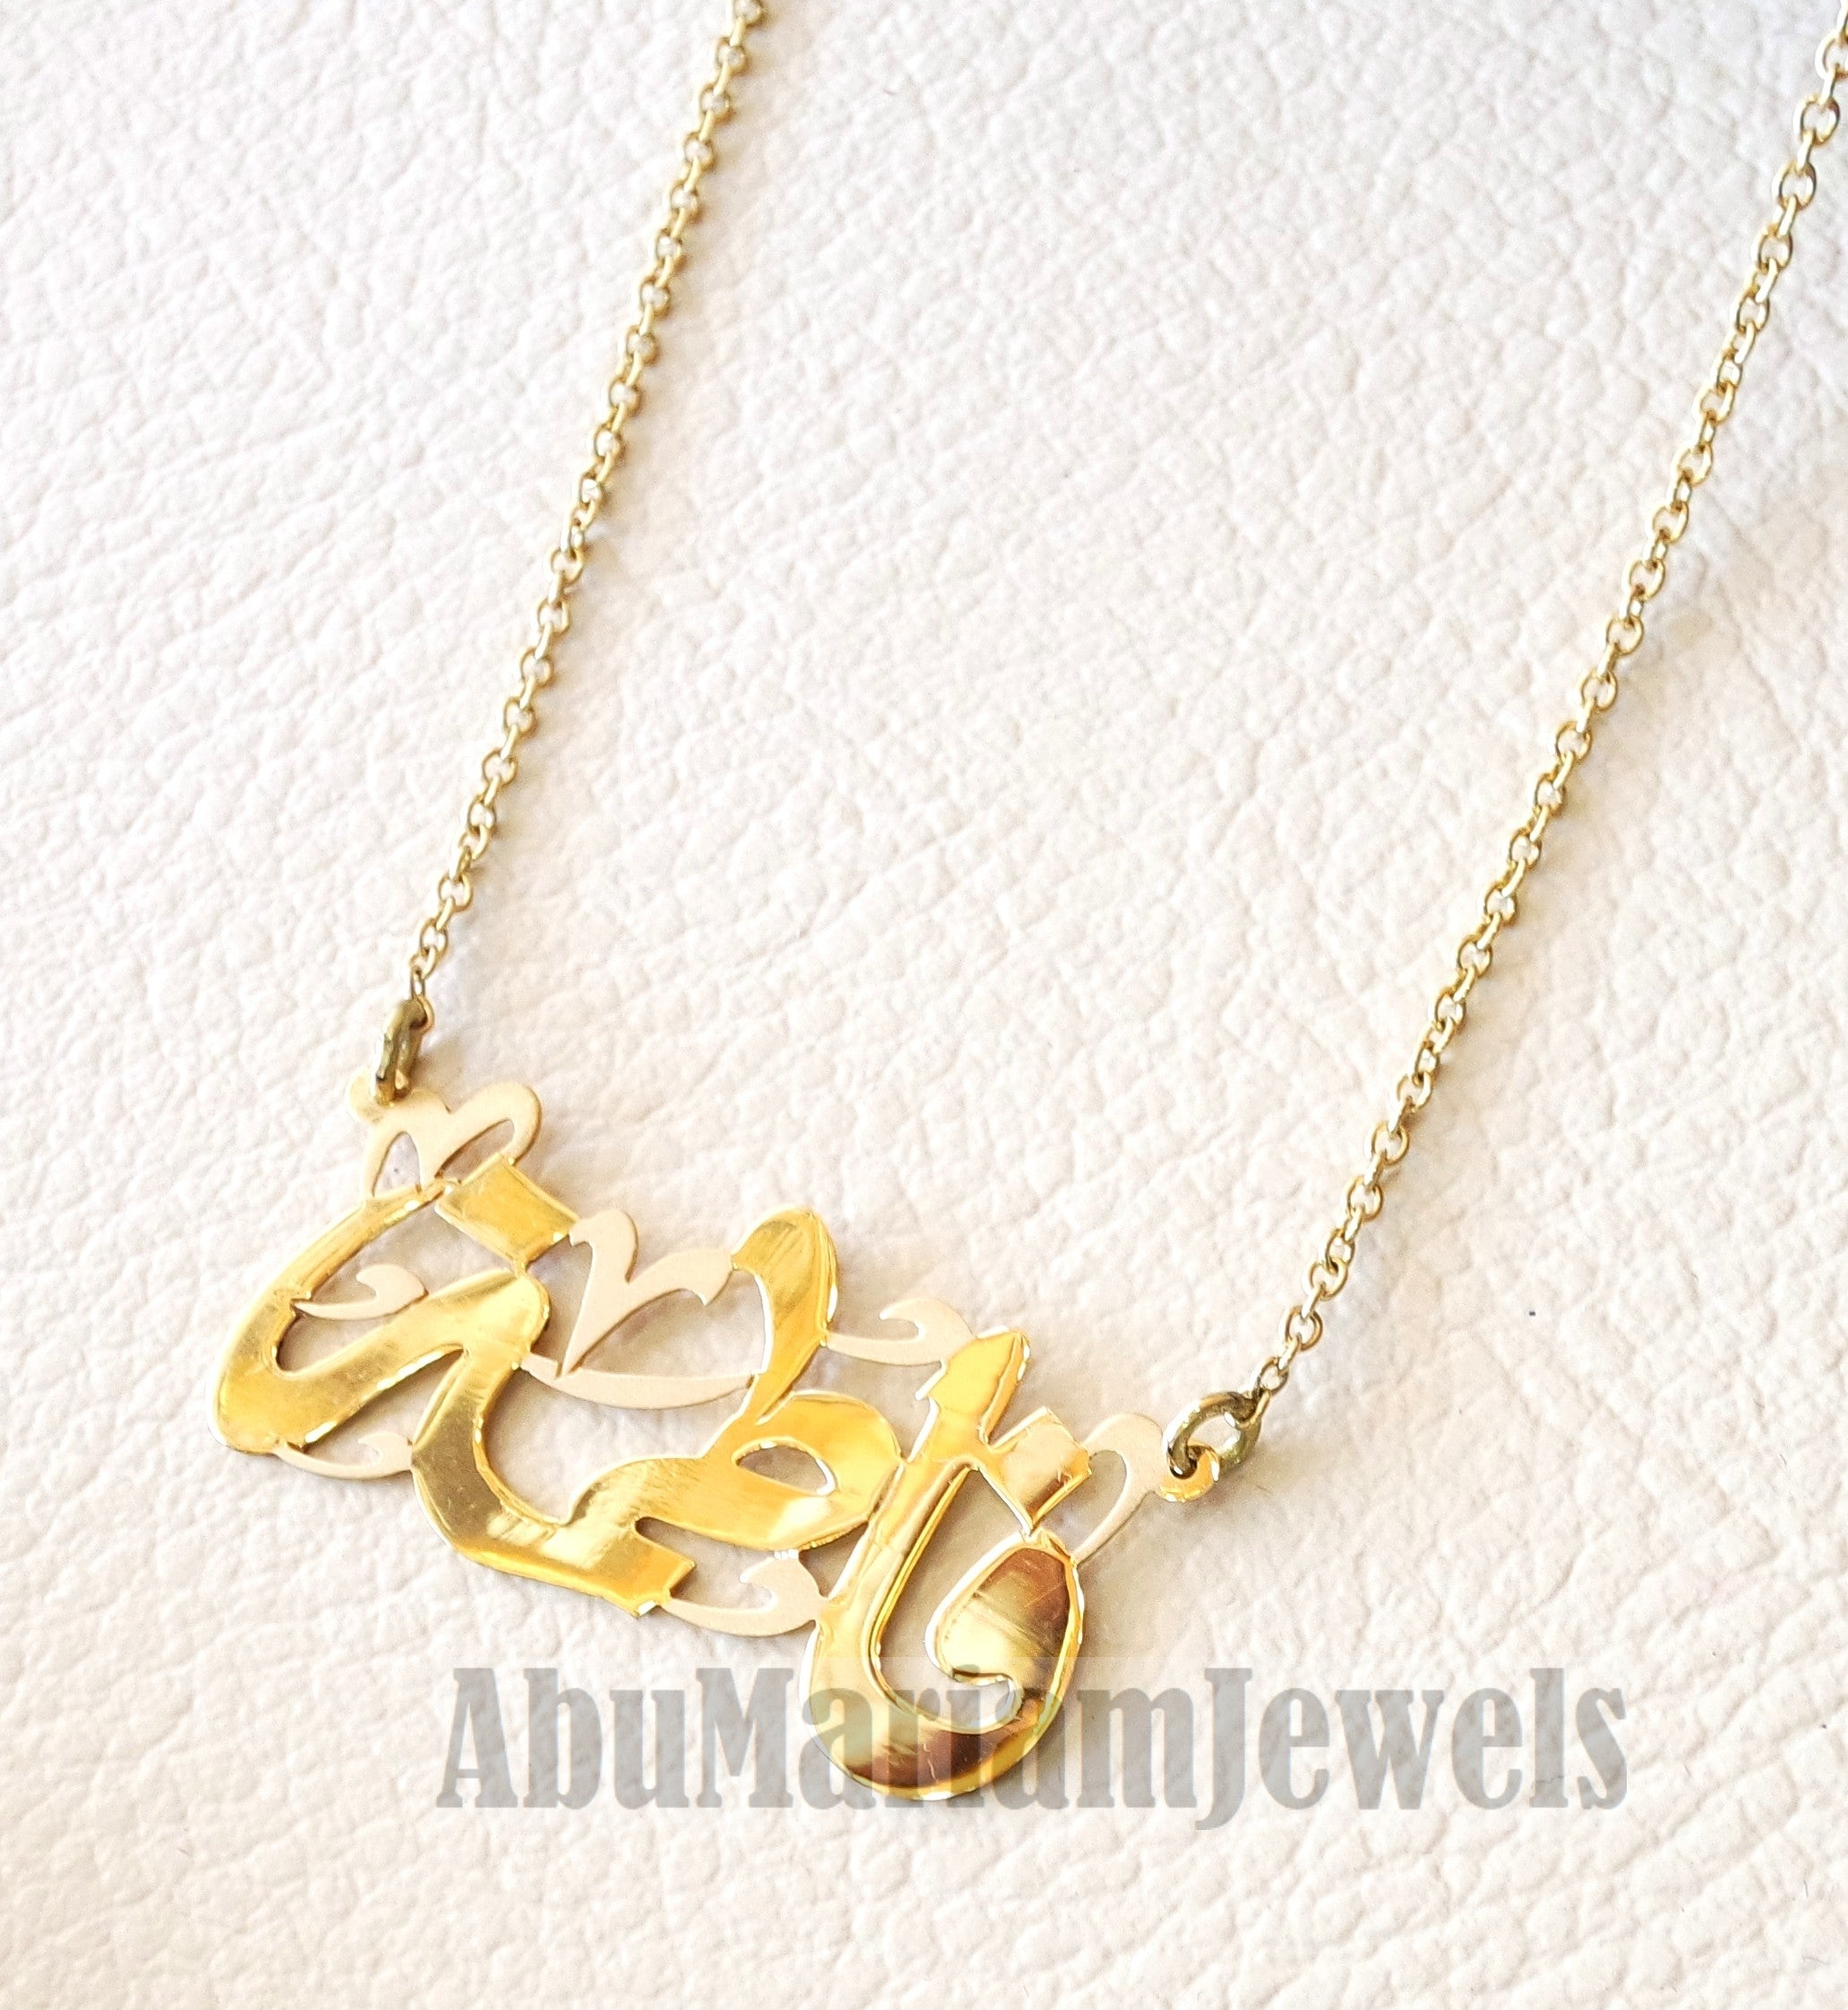 gold diamonds jewelry product initial ga personalized gargantilla namify oro necklace diamantes y copiar b pendant en inicial blanco a with customima